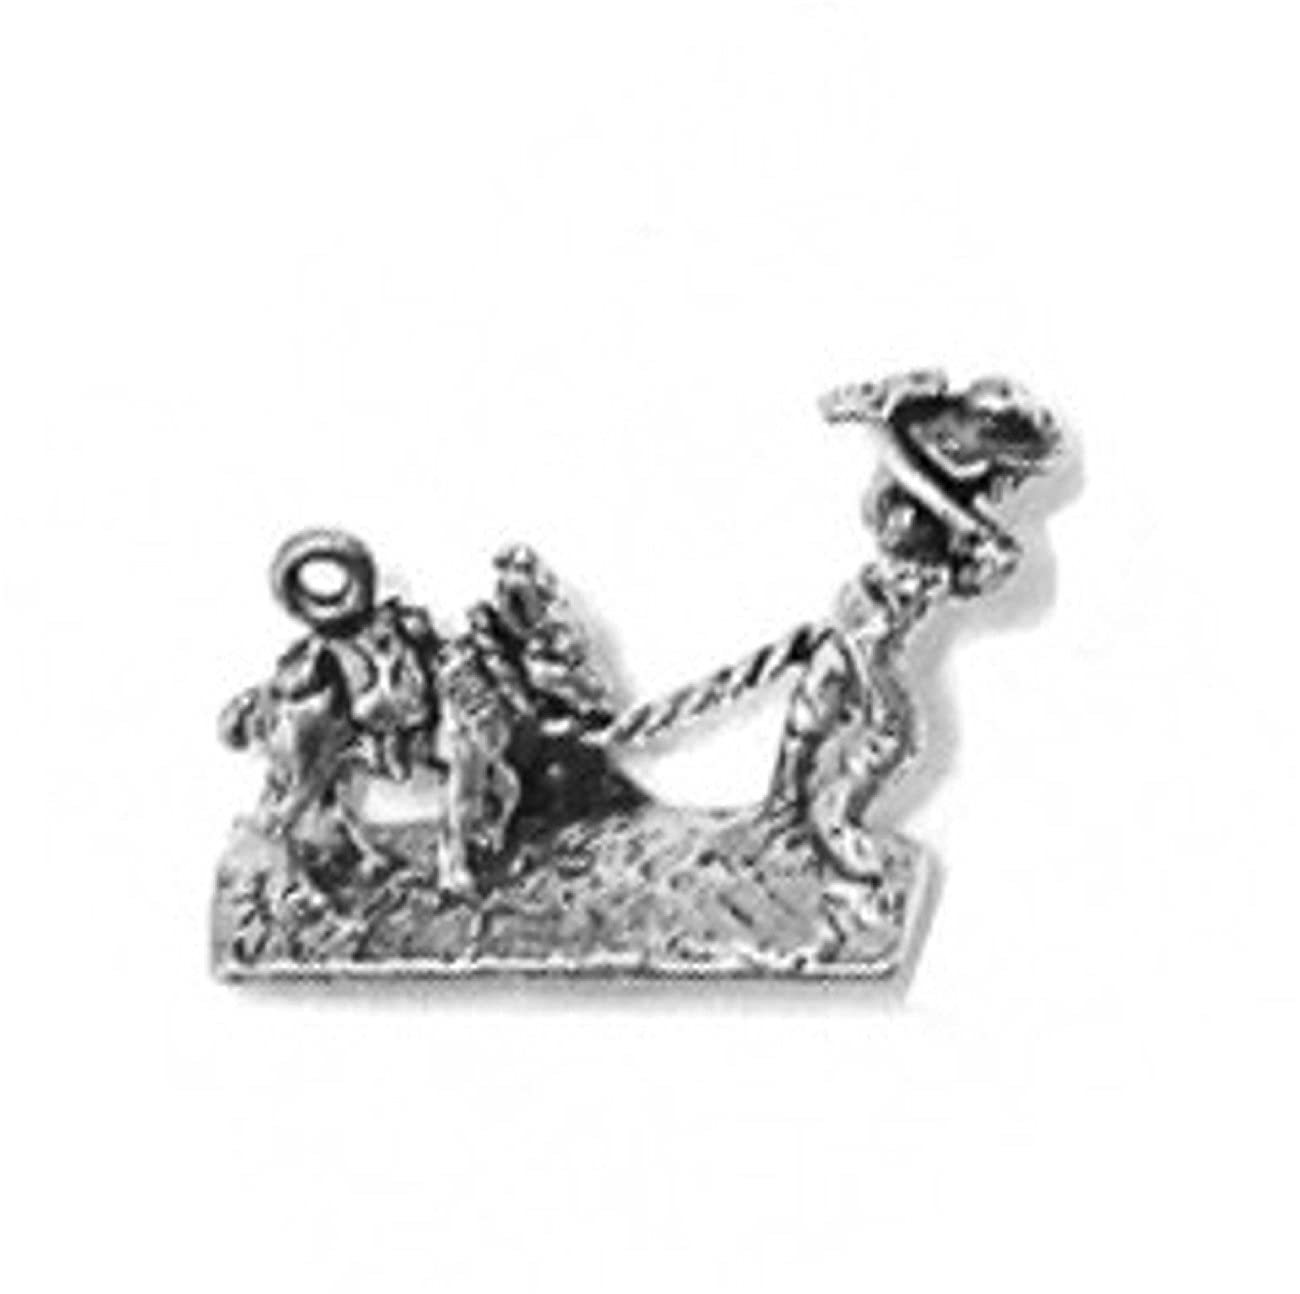 Sterling Silver Charm Bracelet With Attached 3D Gold Prospector Miner Panner Charm With Donkey Anima